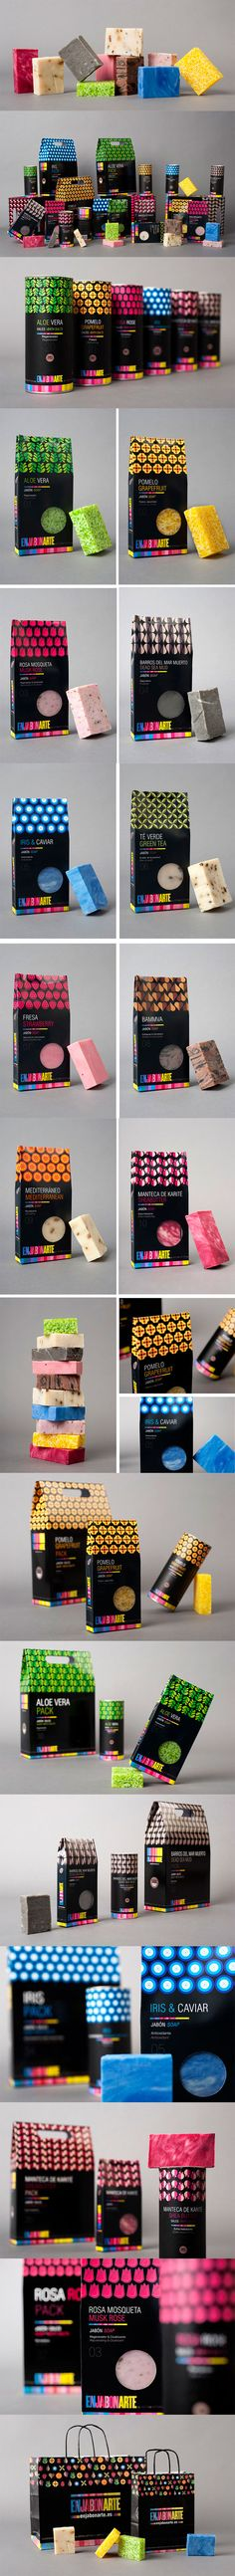 Enjabonarte #packaging #soaps #soappackaging #design #branding #identity #corporate #business #marketingPD